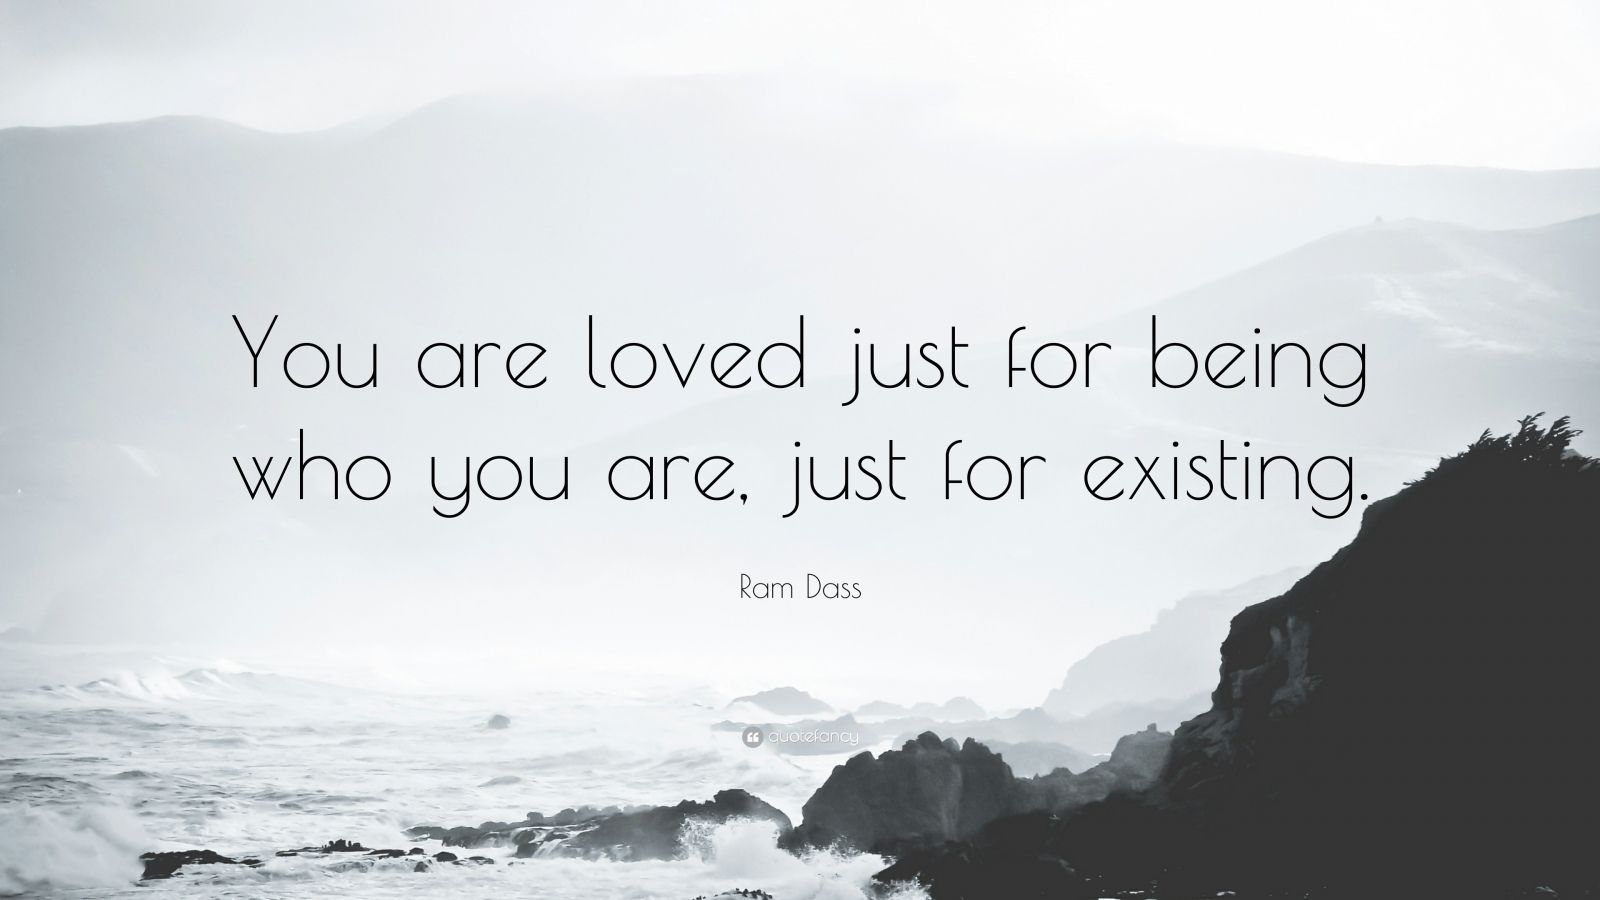 56116-Ram-Dass-Quote-You-are-loved-just-for-being-who-you-are-just-for.jpg